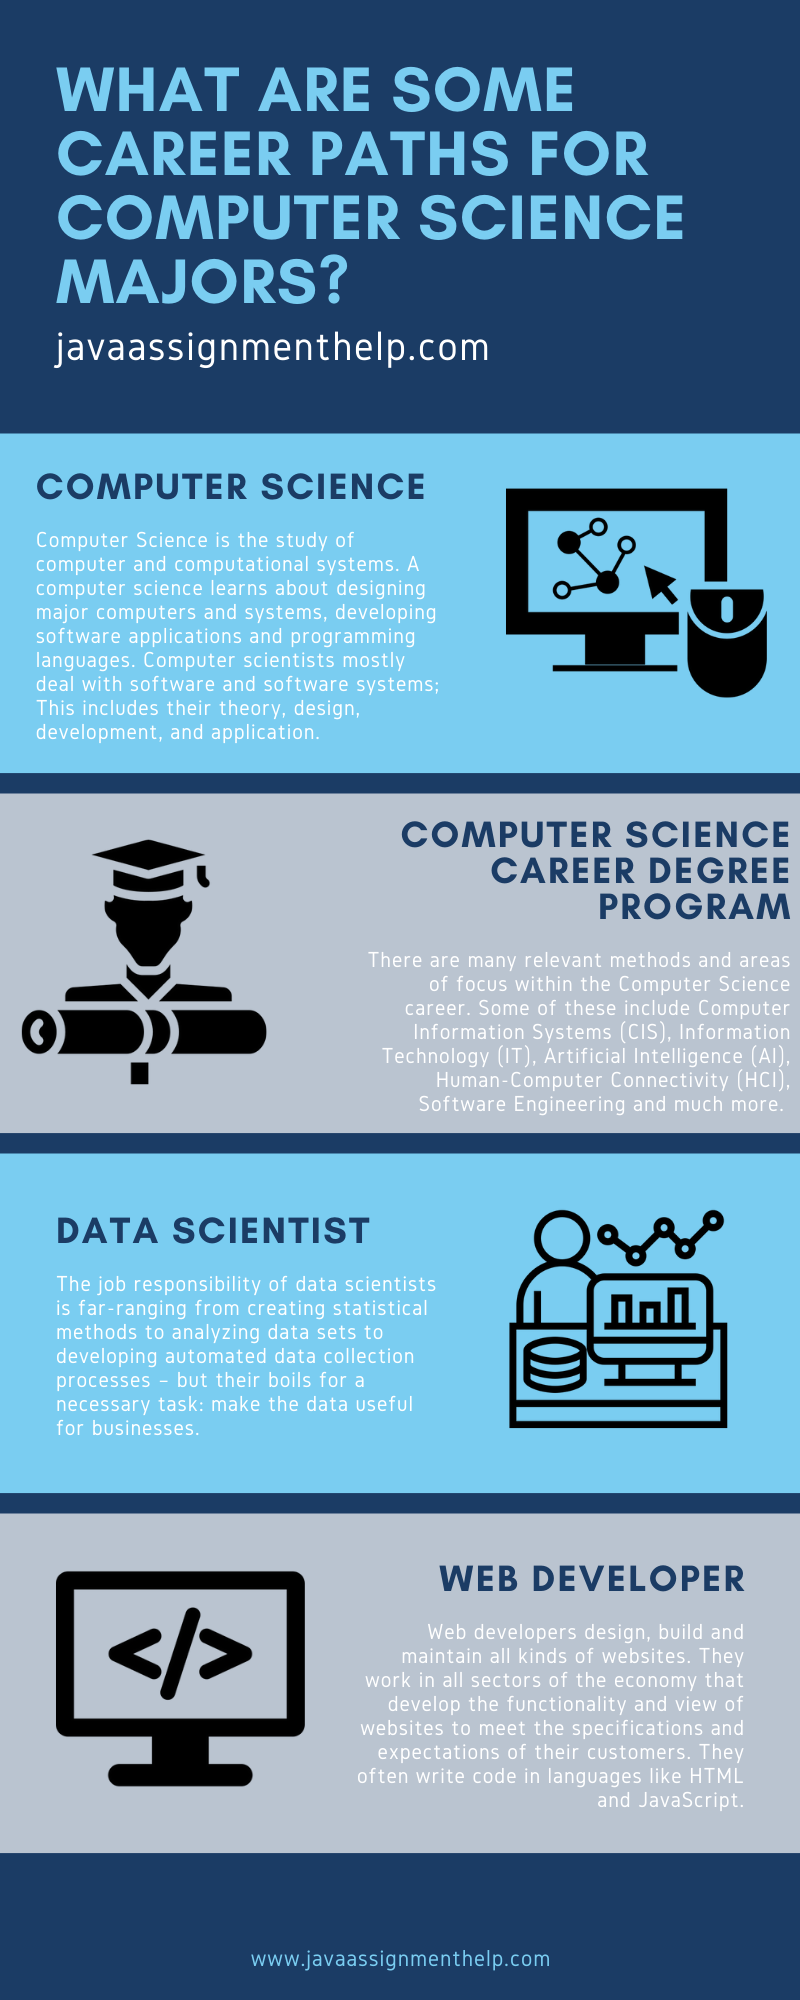 What are Some Career Paths for Computer Science Majors